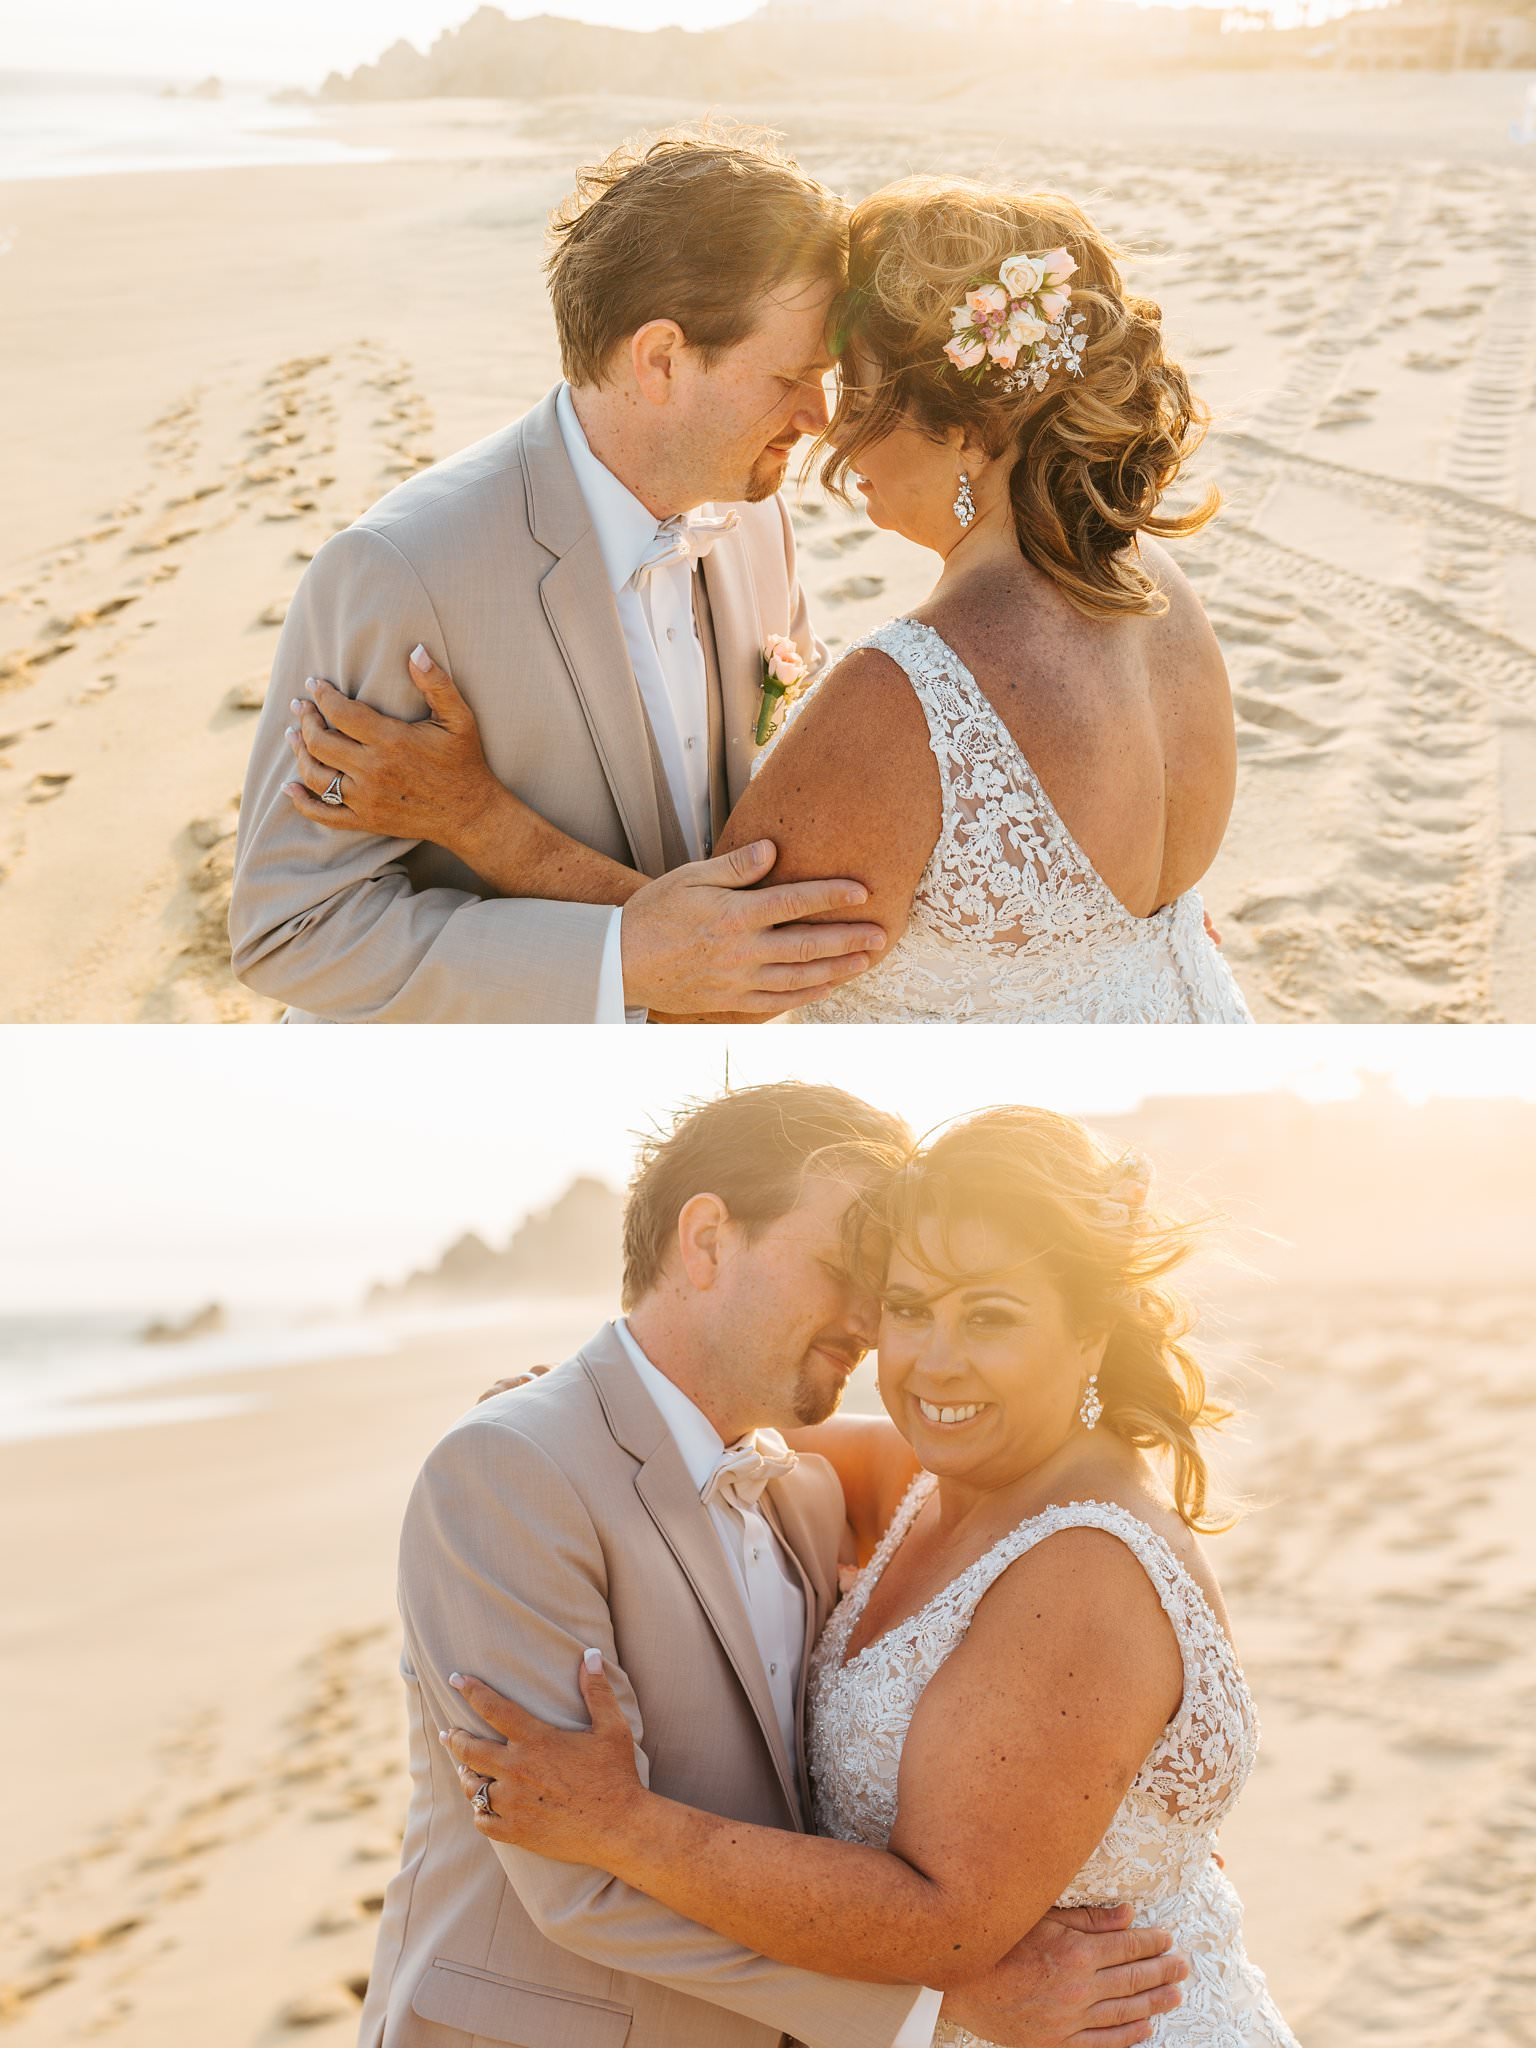 Warm sun kissed bride and groom photos on the beach in Cabo - Destination wedding photographer - https://brittneyhannonphotography.com